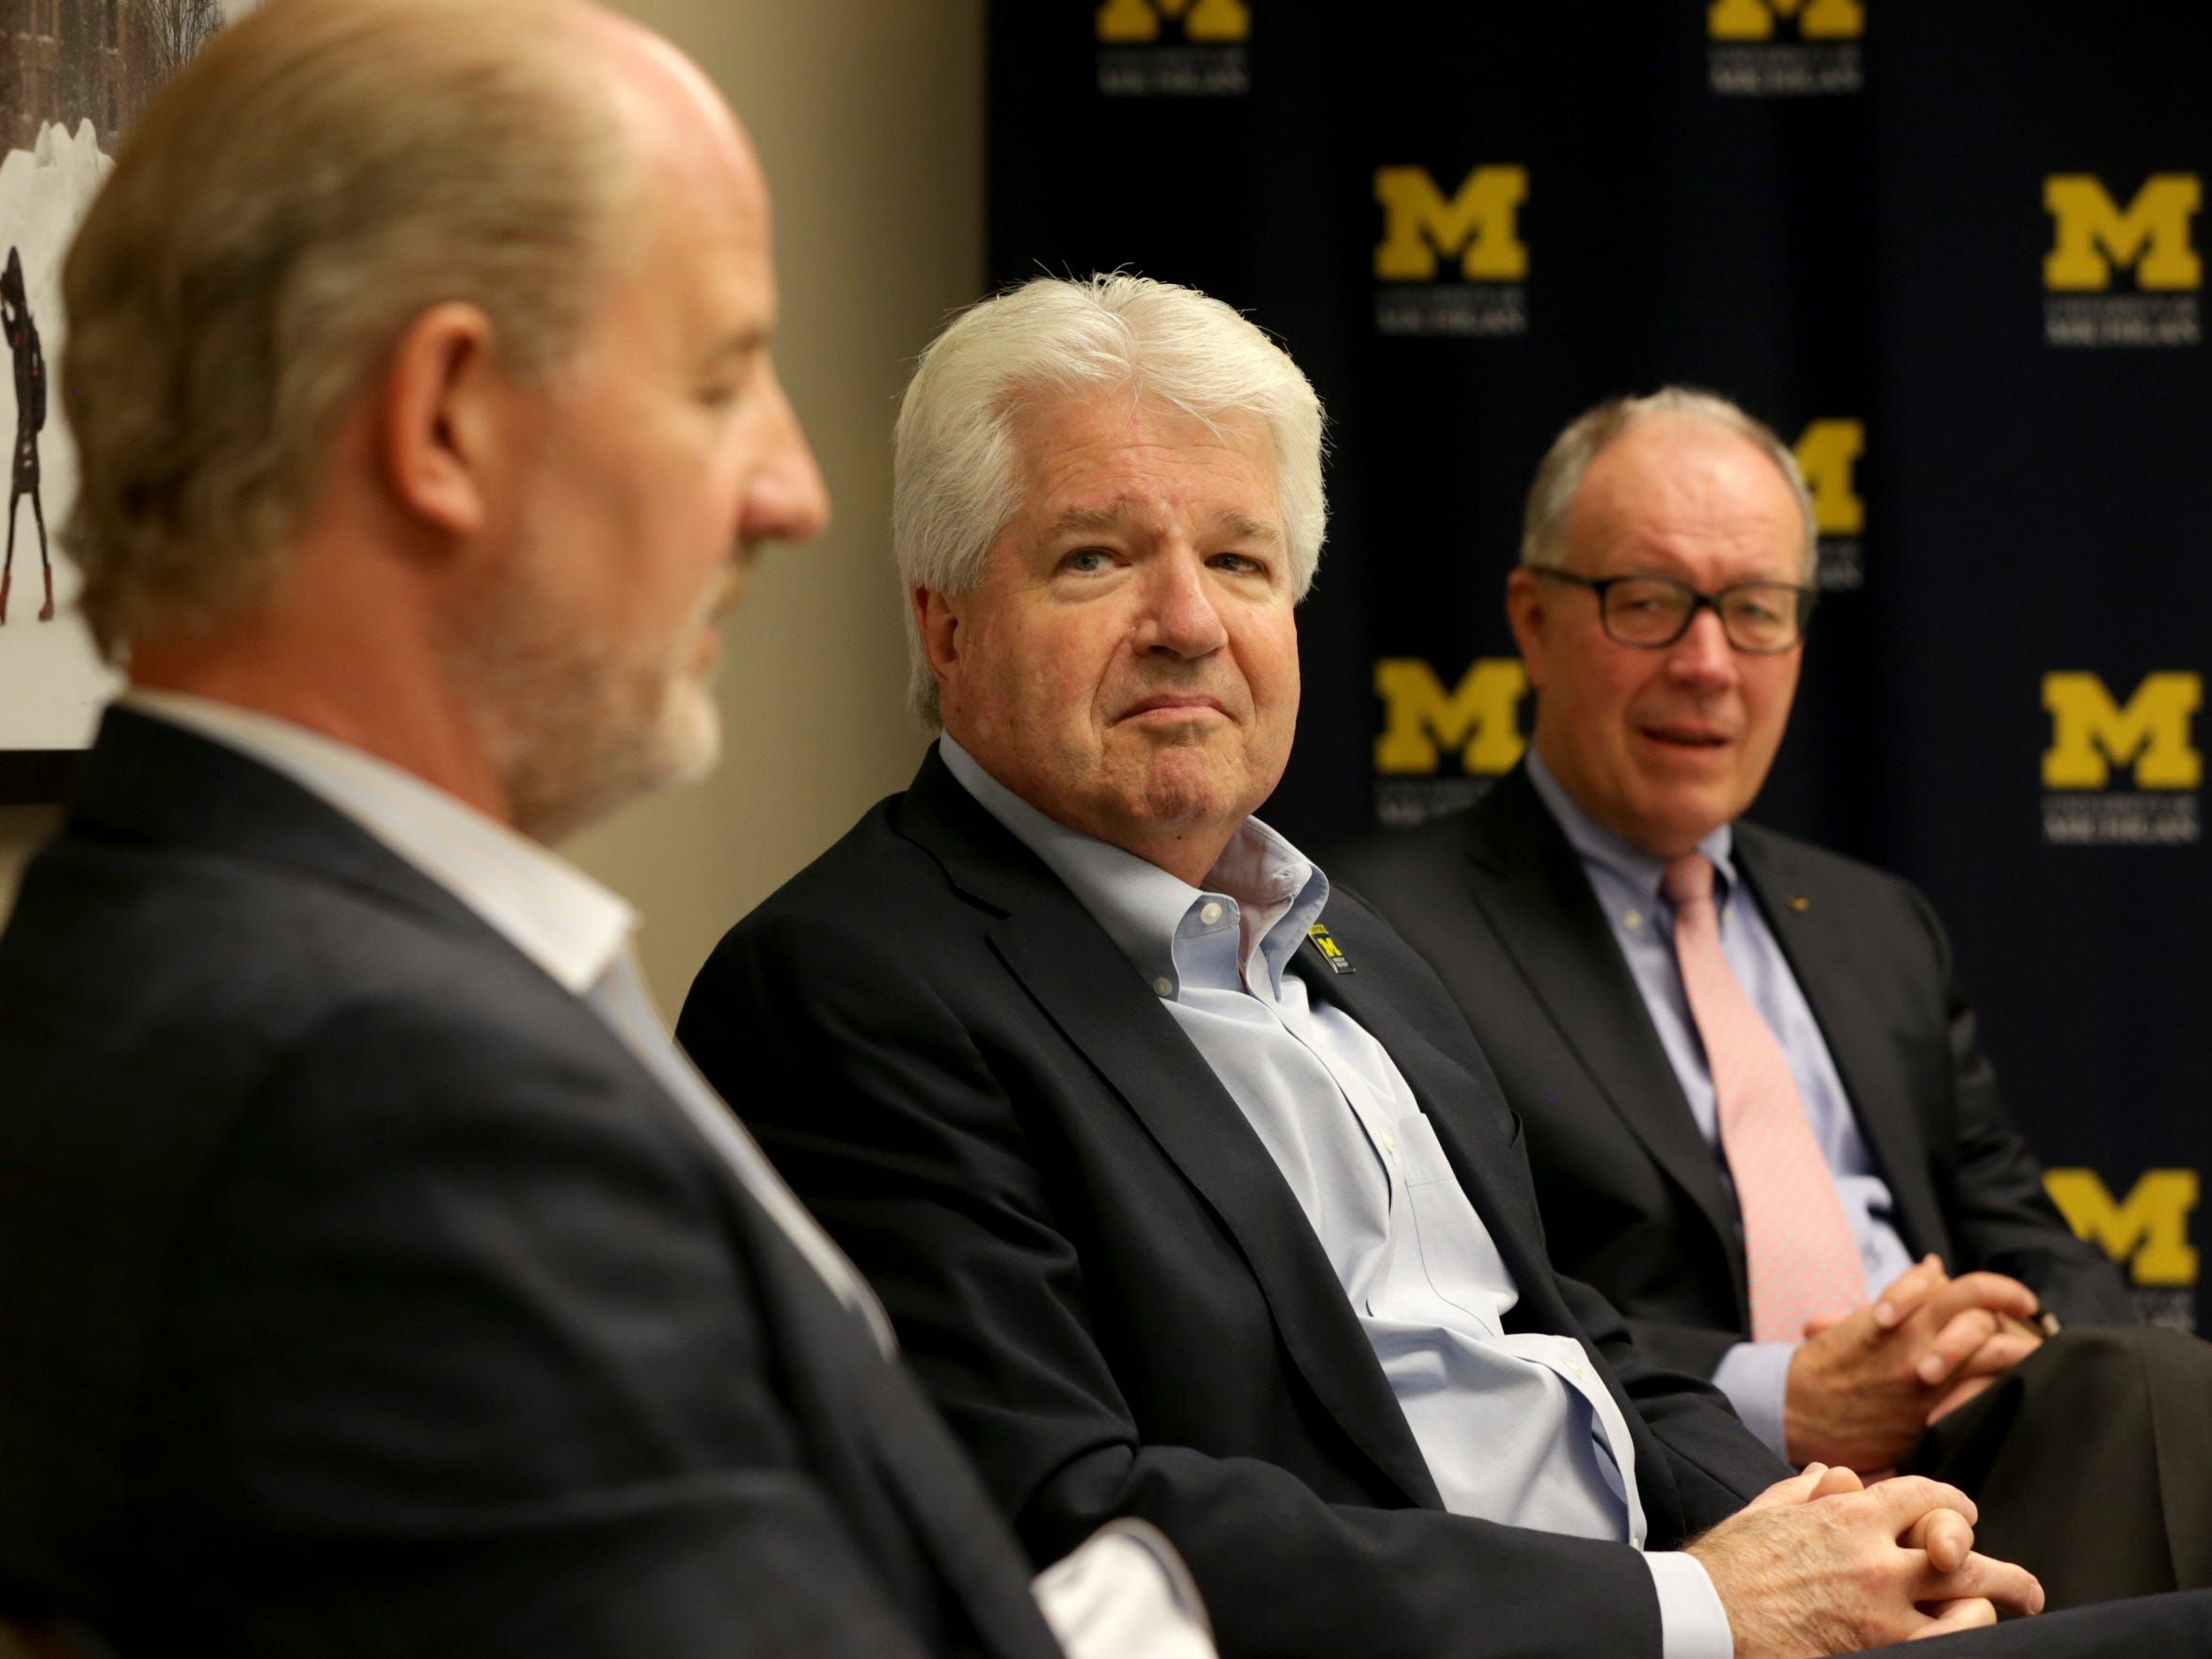 University of Michigan endowment invests billions with donor-run funds